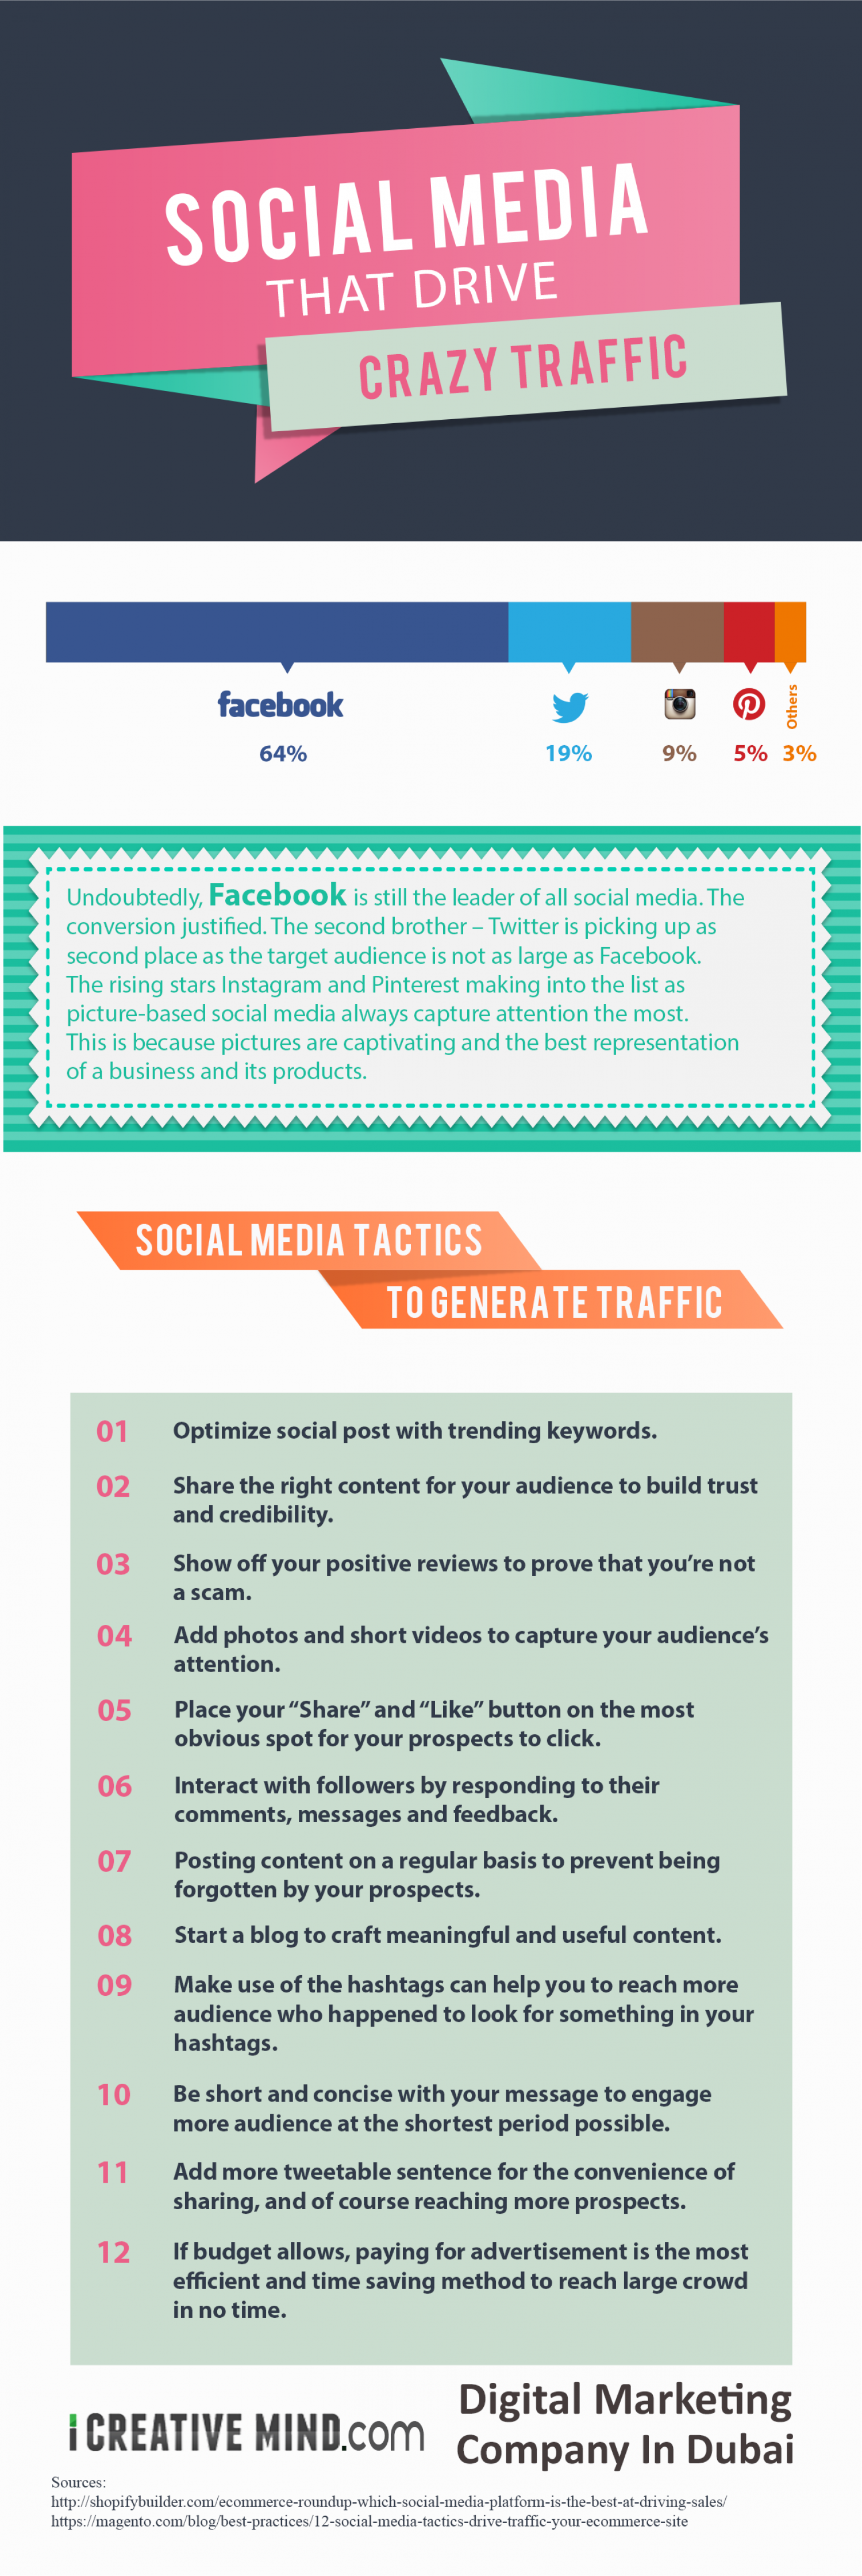 12 Social Media Tactics to Generate Traffic Infographic